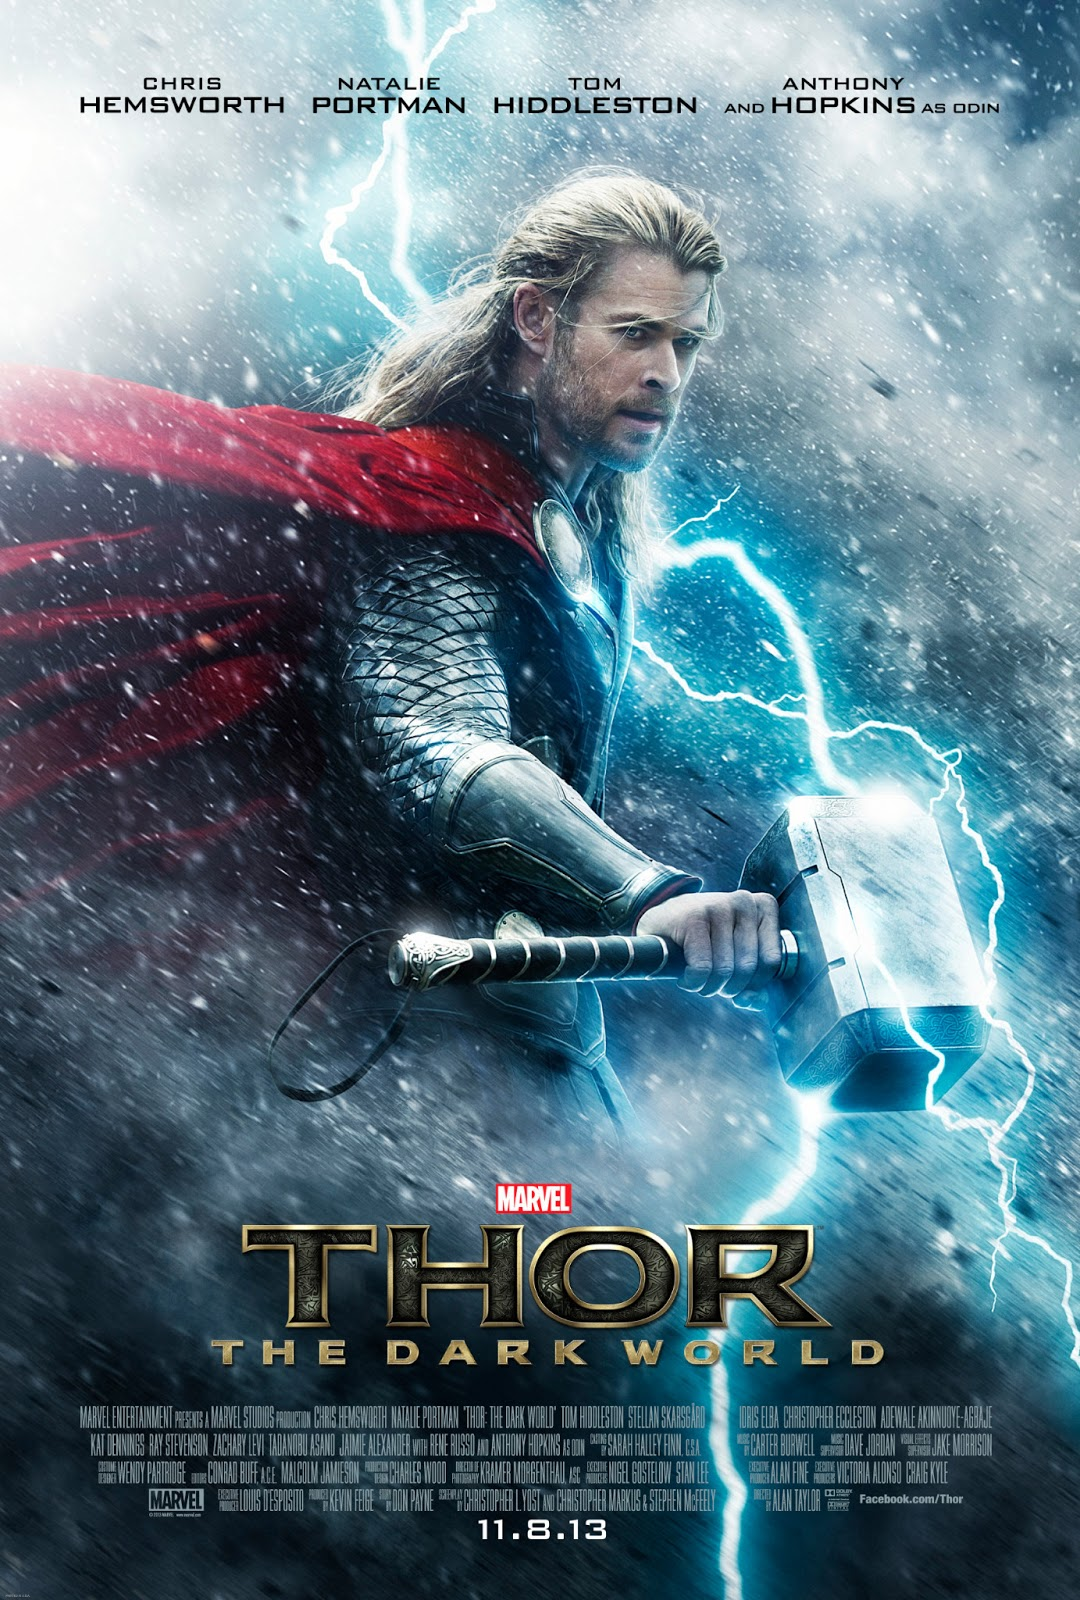 Teaser poster for Thor: The Dark World